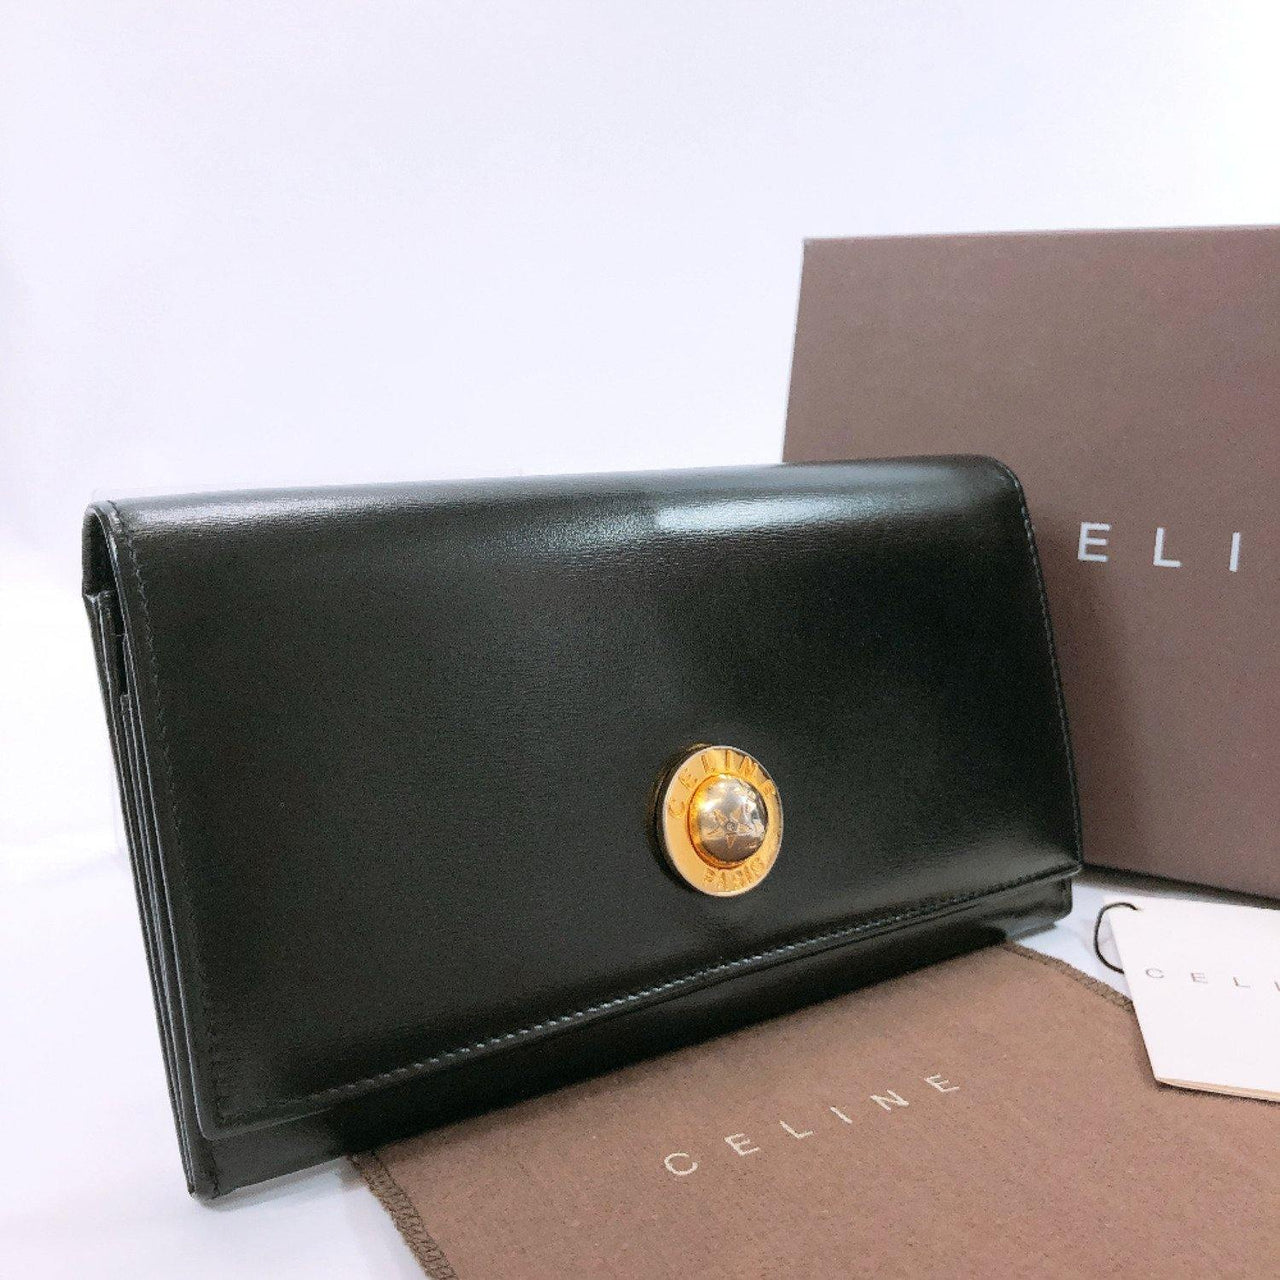 CELINE purse vintage purse with a clasp leather black Women Used